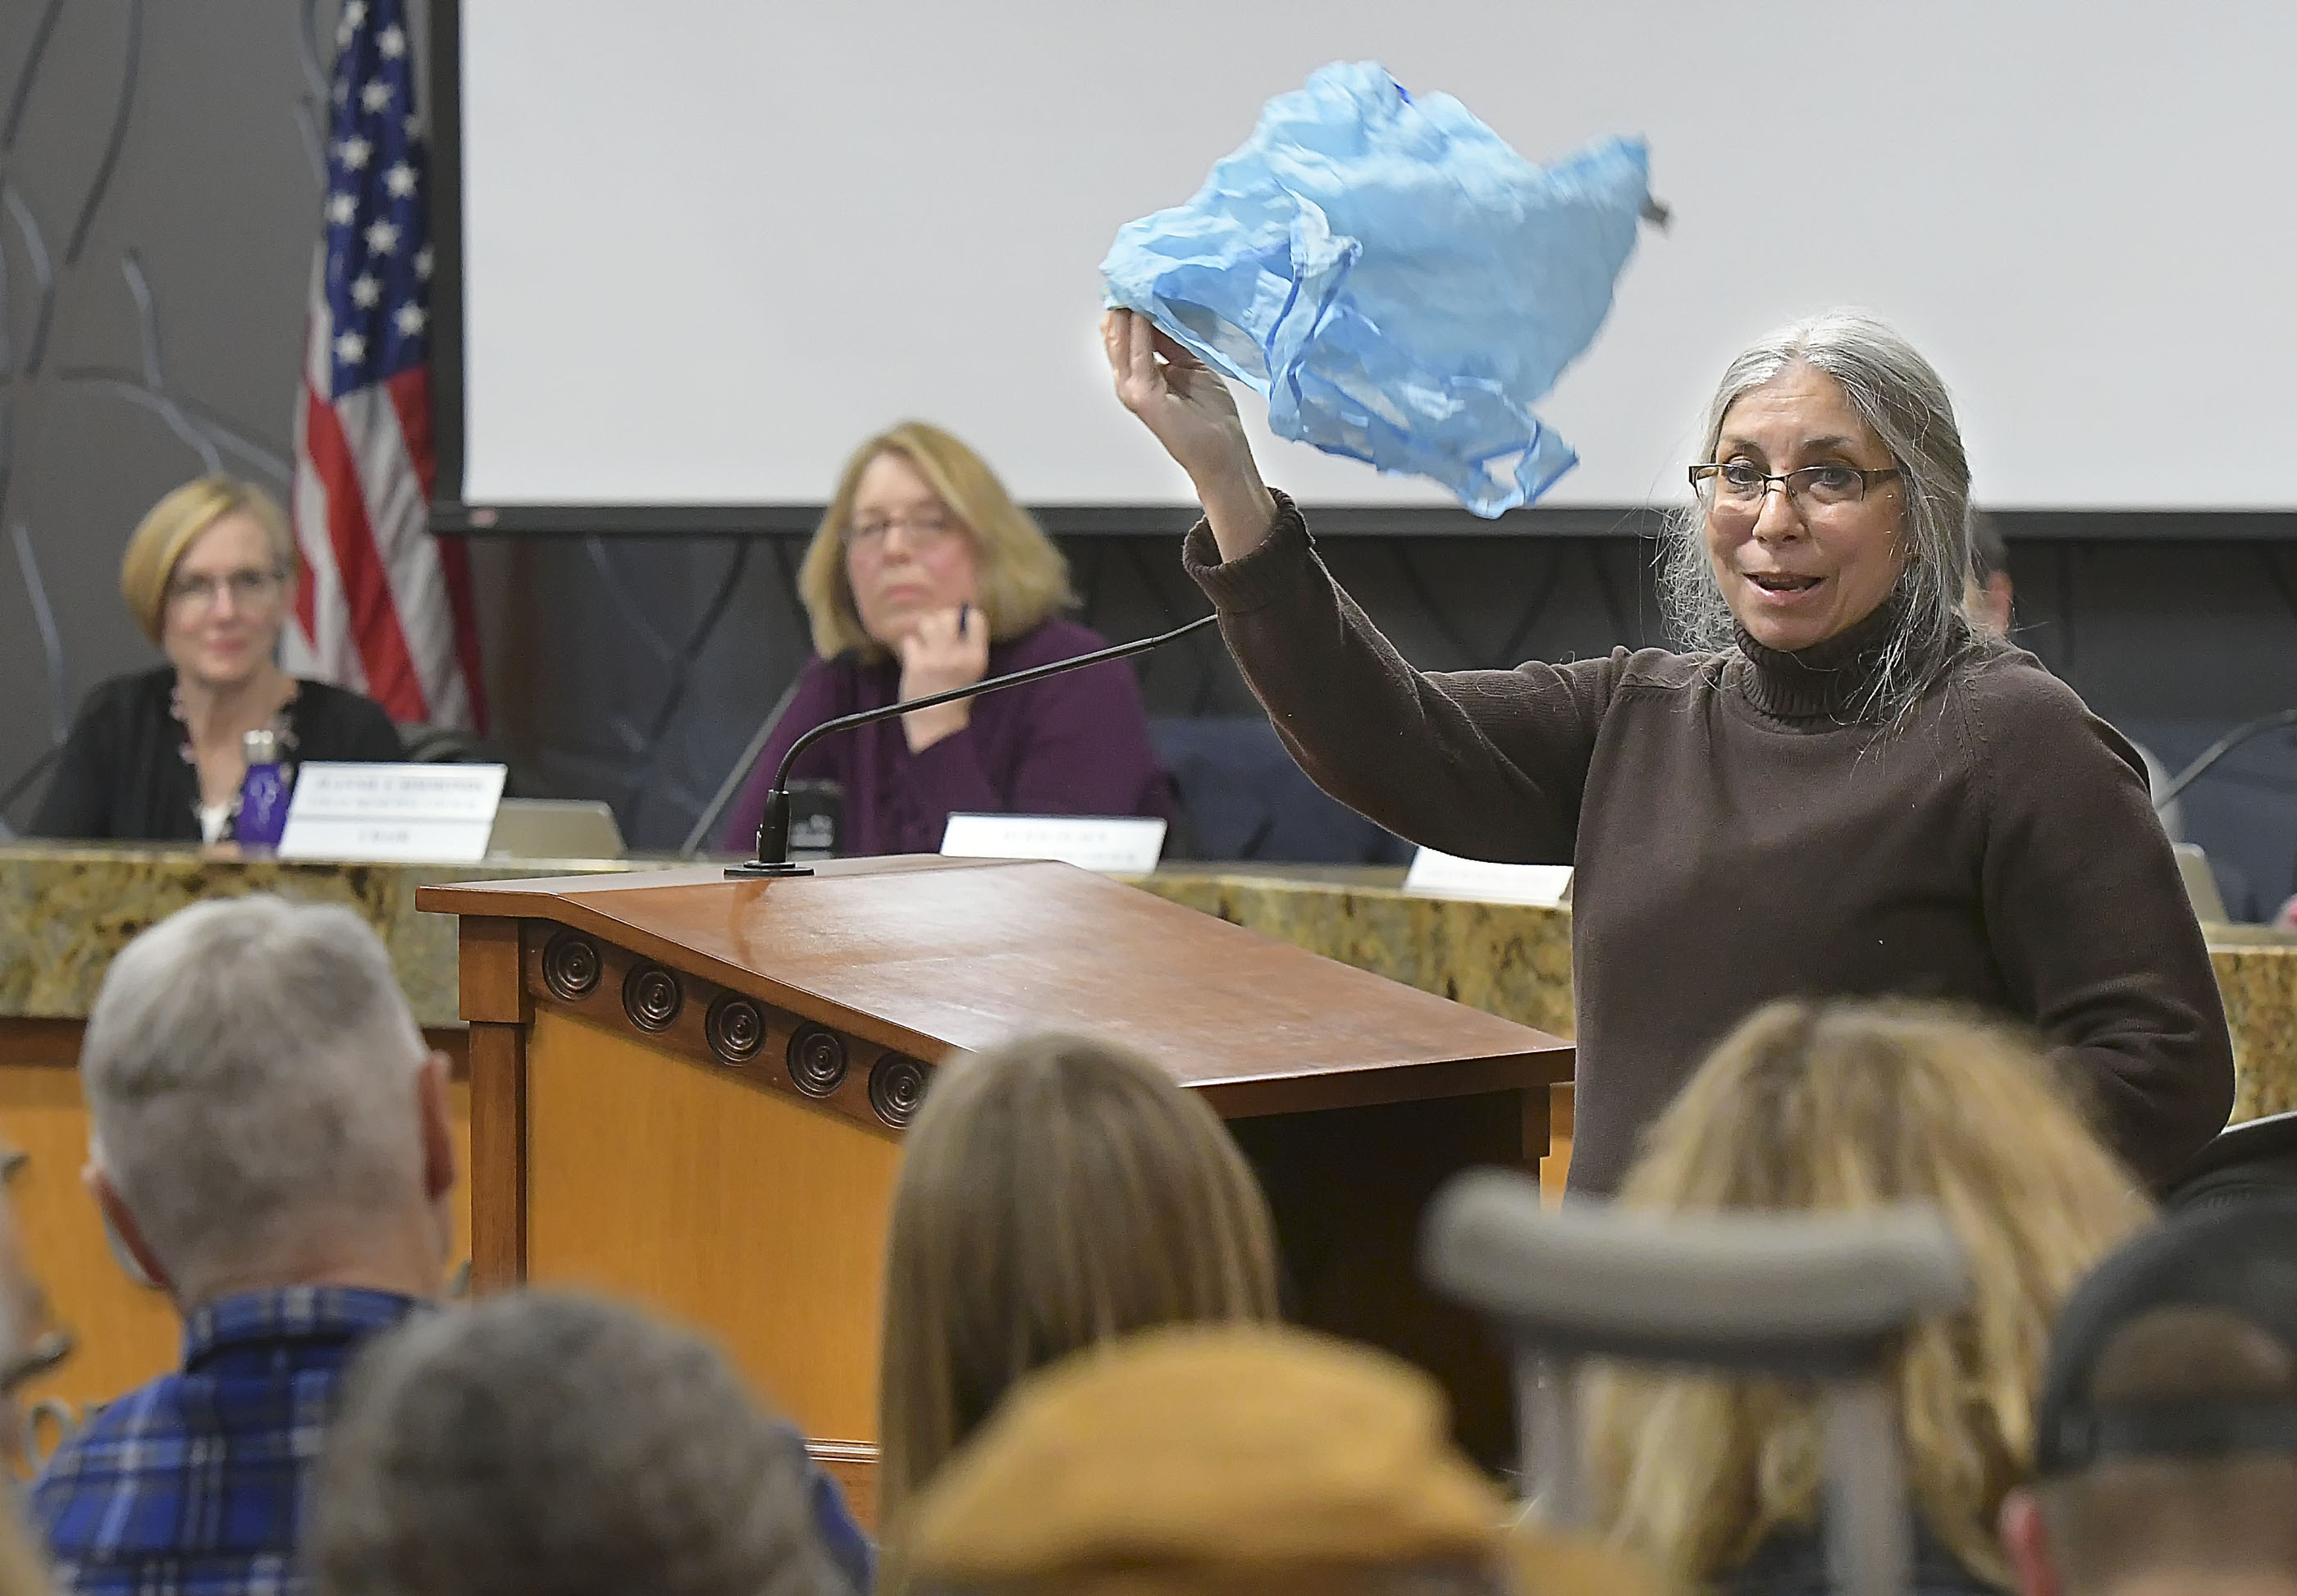 Mary DaSilva speaks about a proposed plastic bag ban, during a Logan City Council meeting in February 2019.